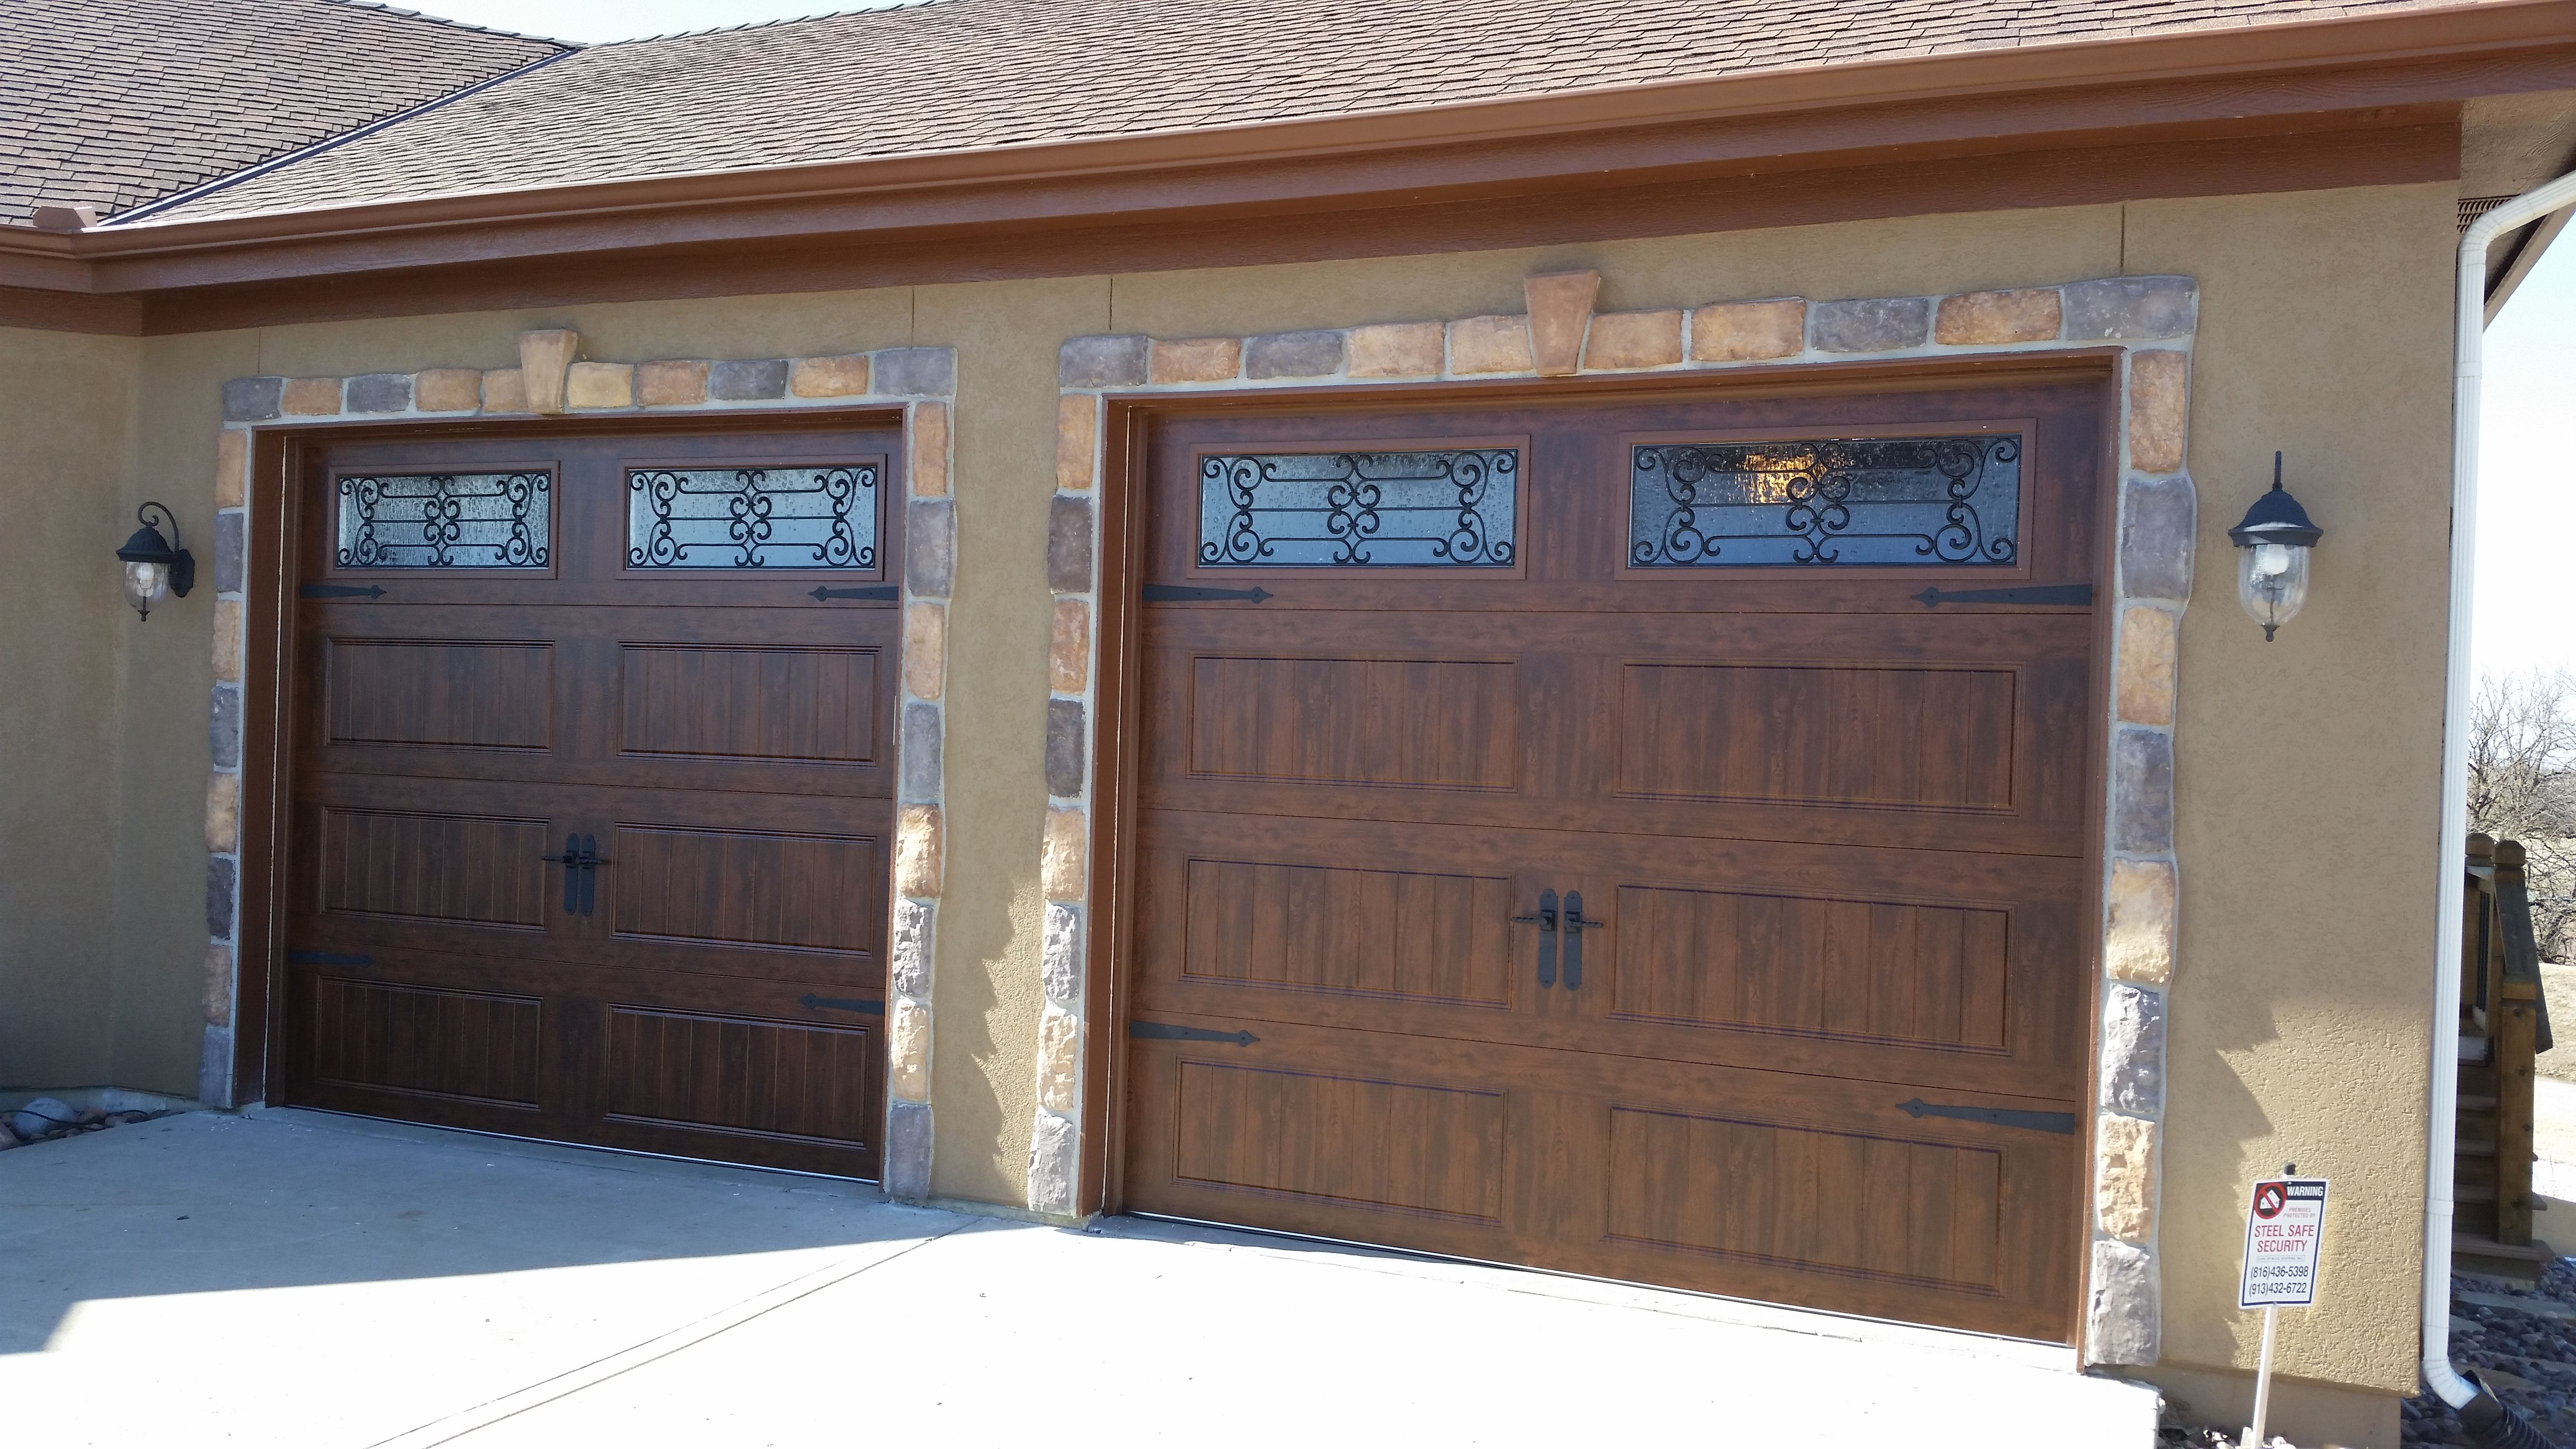 single garage doors with windows. Gallery Collection Clopay Garage Doors Carriage Style With Windows Single Ultragrain Finish Steel Insulated Handles And Hinges,